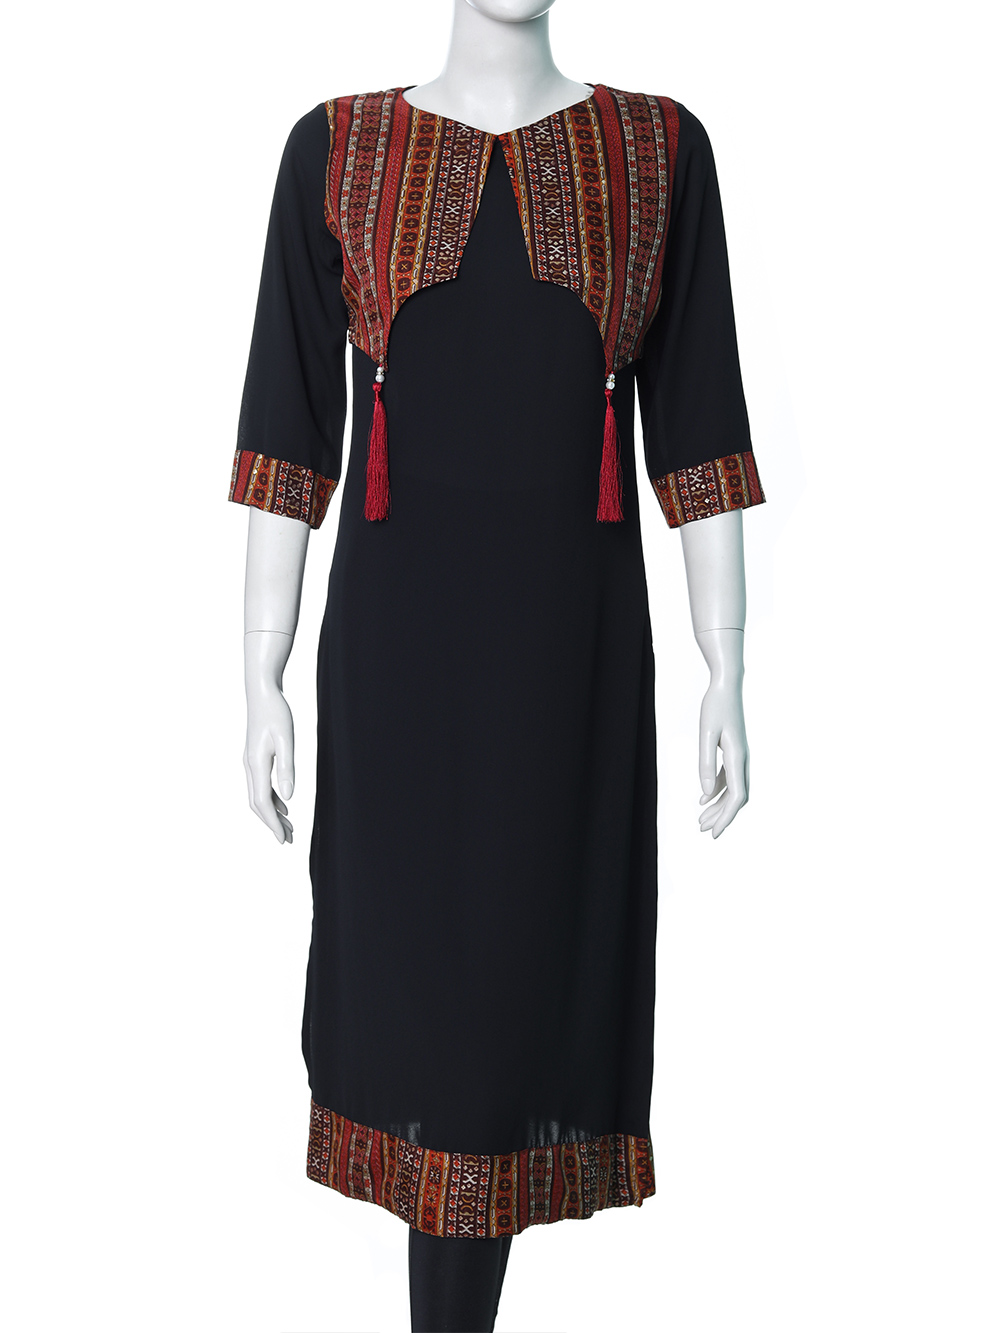 LADIES ETHNIC MID LENGTH KURTI